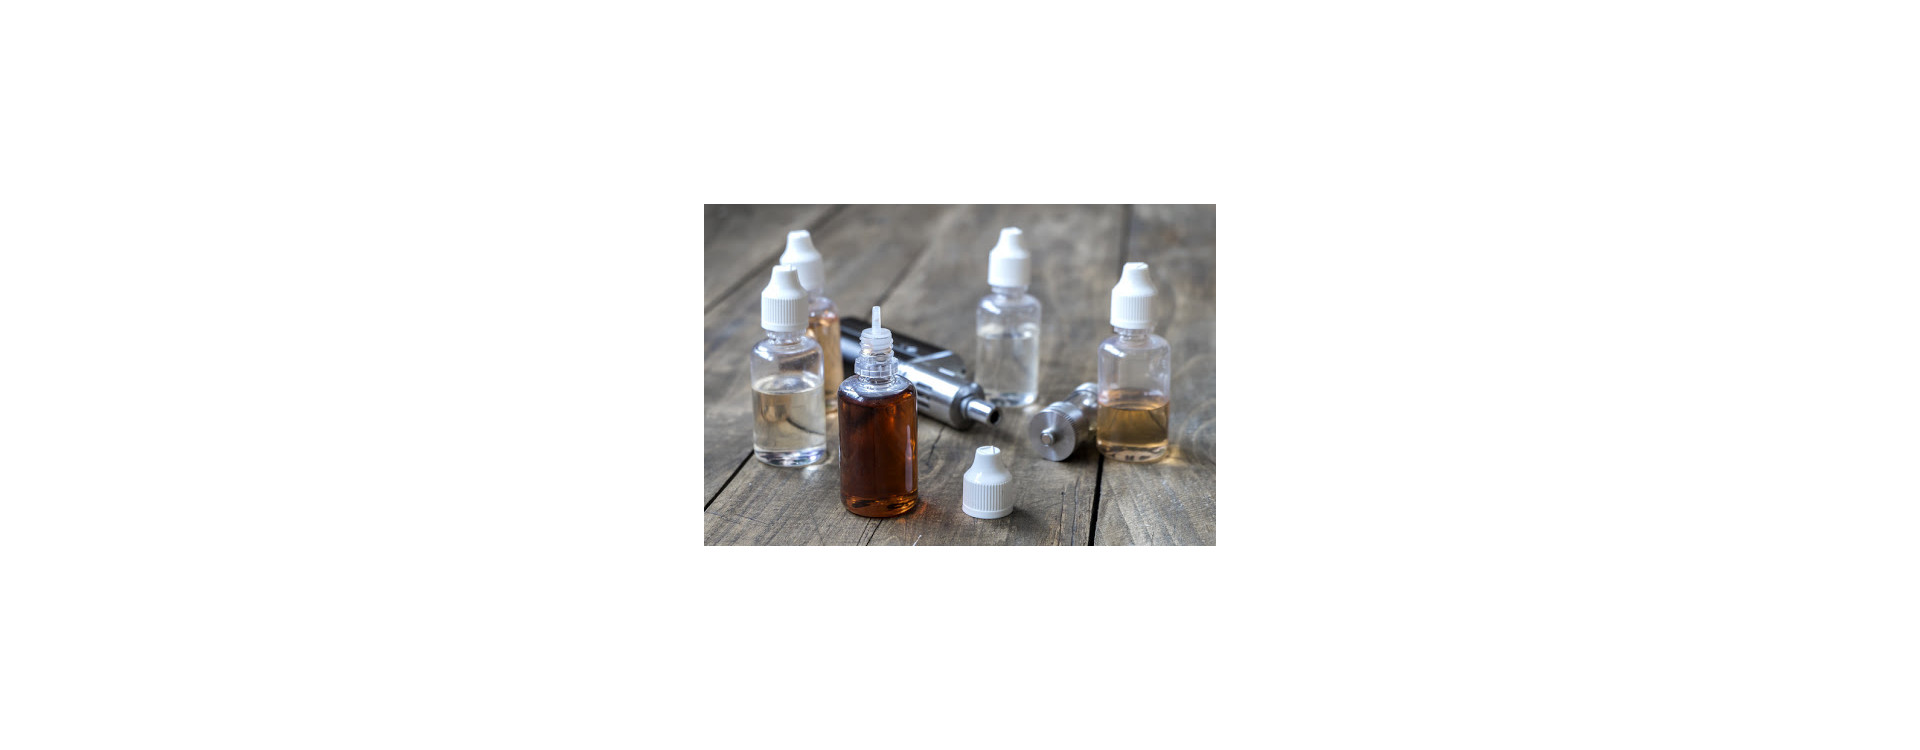 Comment peut-on conserver son e-liquide à bon escient ?